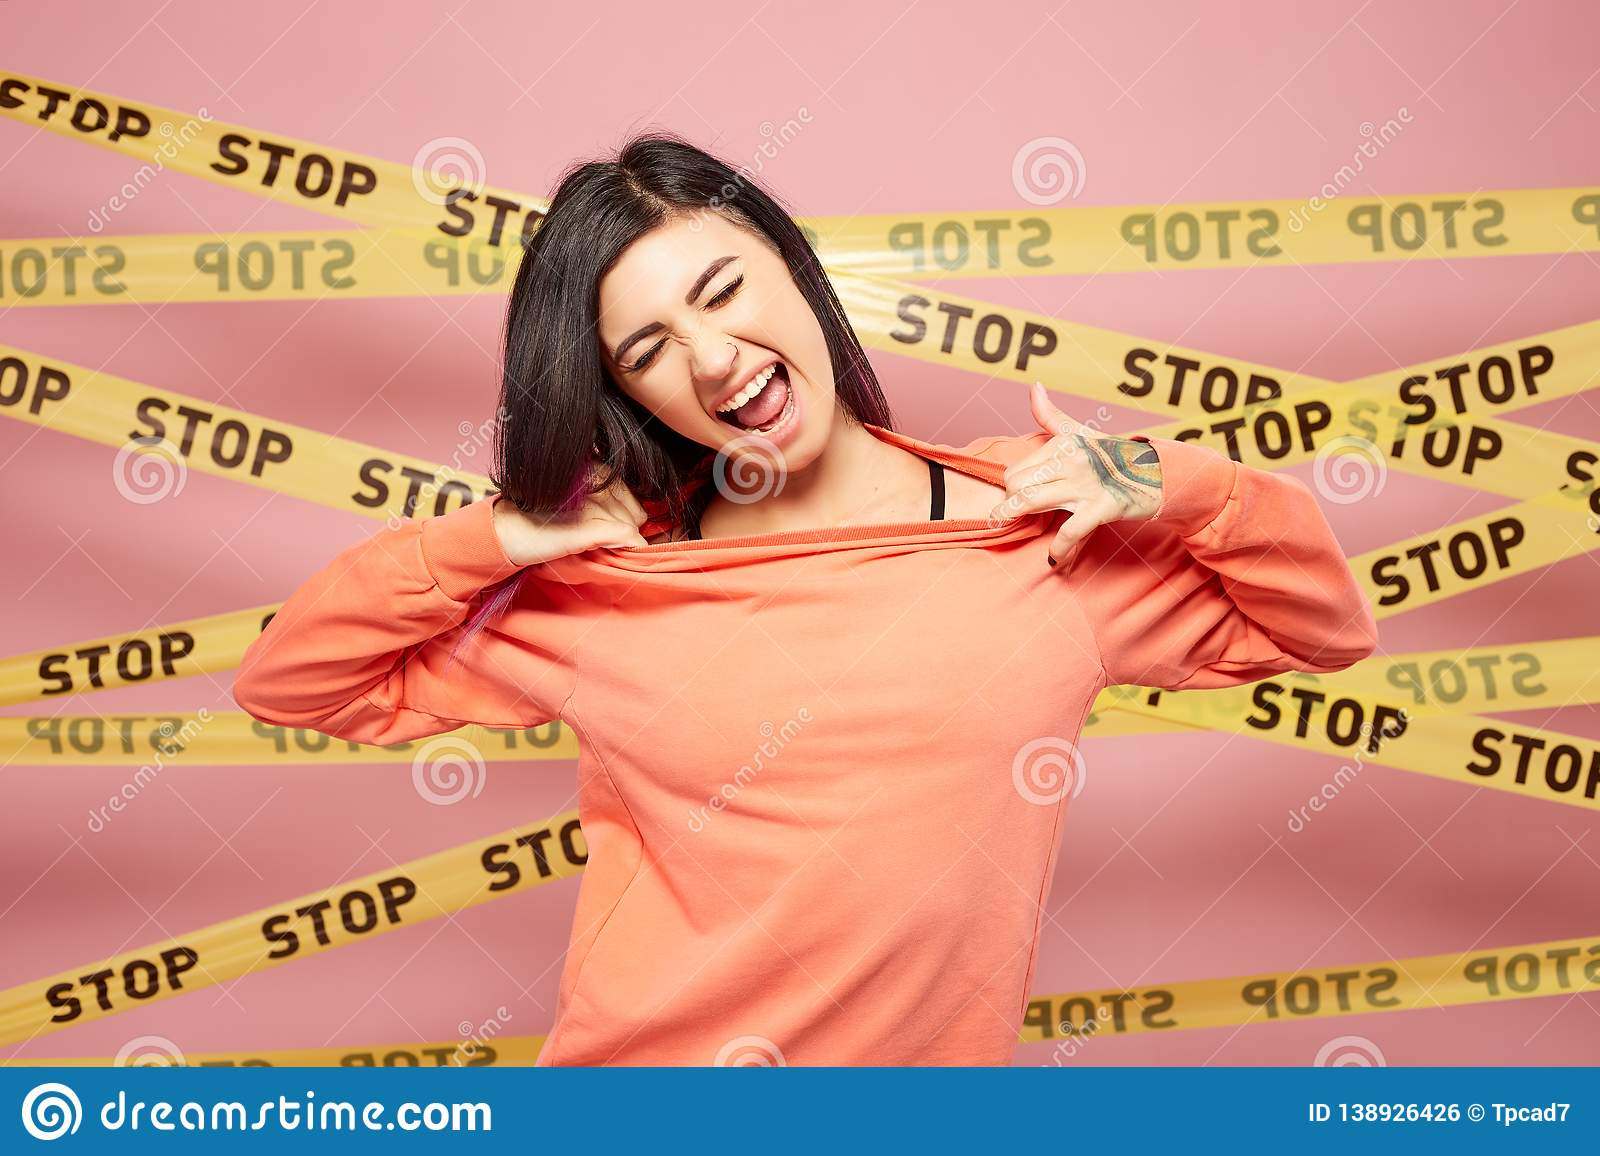 Young girl with purple hair tips dressed in peach color sweatshirt shouts on the background of pink wall with the yellow